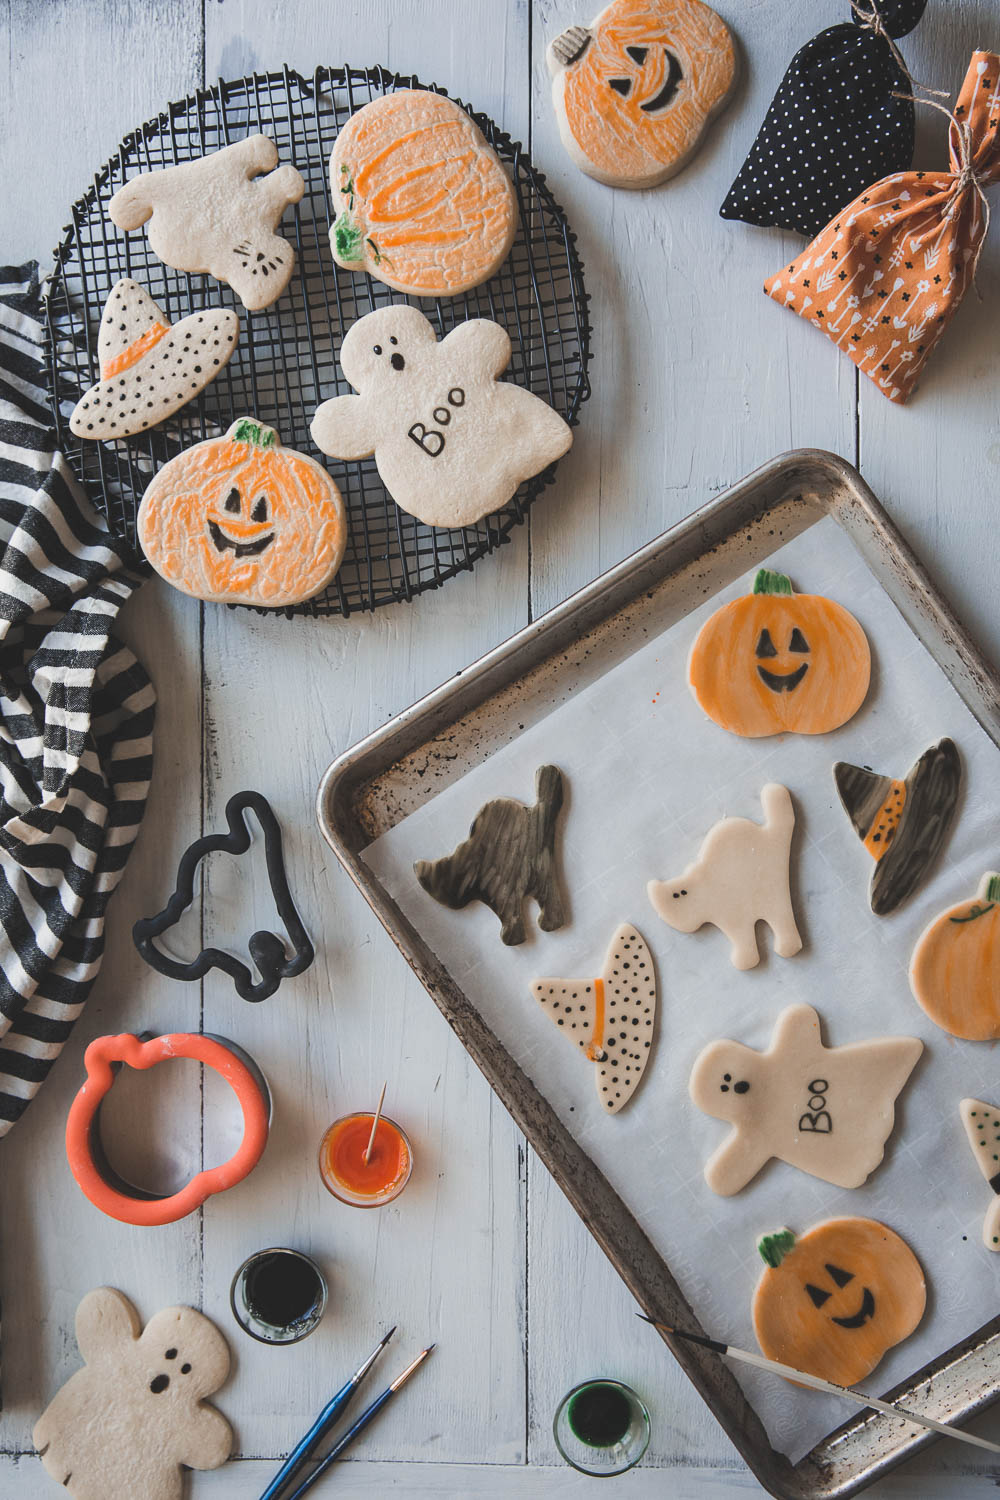 Before and after baking painted Halloween sugar cookies